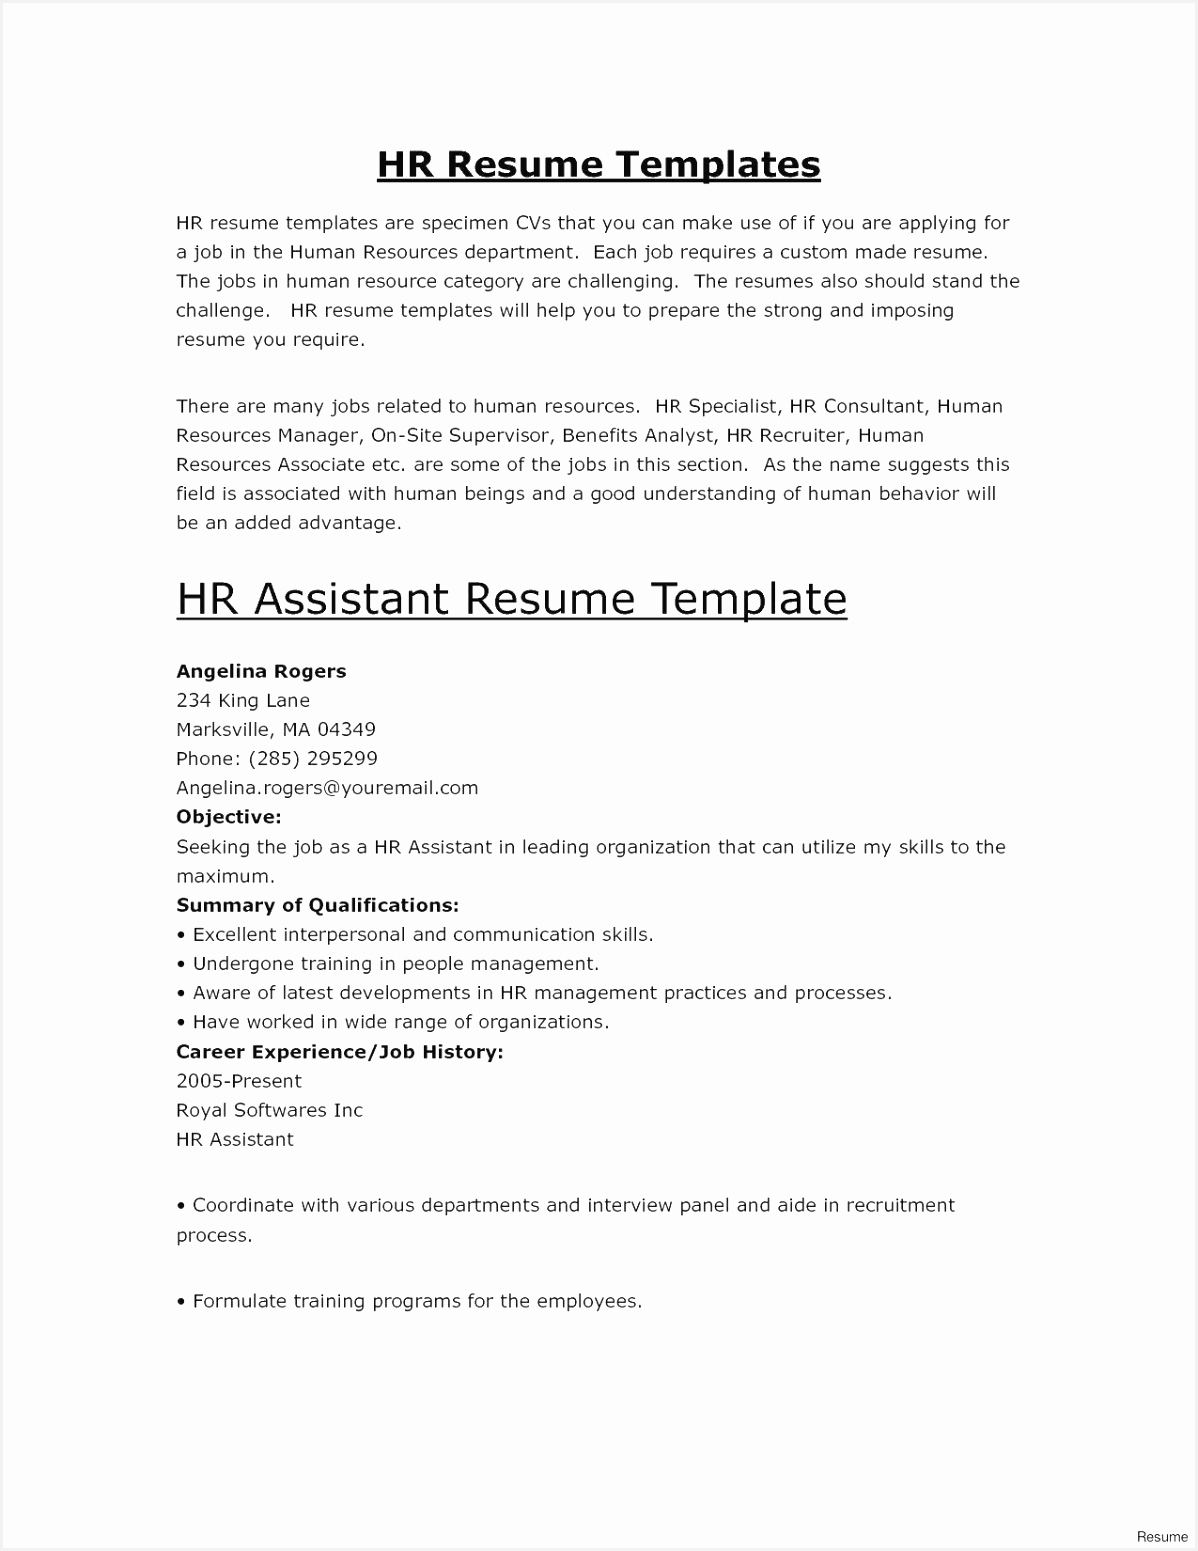 Customer Service Skills Resume Sample Qpazb Inspirational Customer Service Sample Resume Skills Of 8 Customer Service Skills Resume Sample